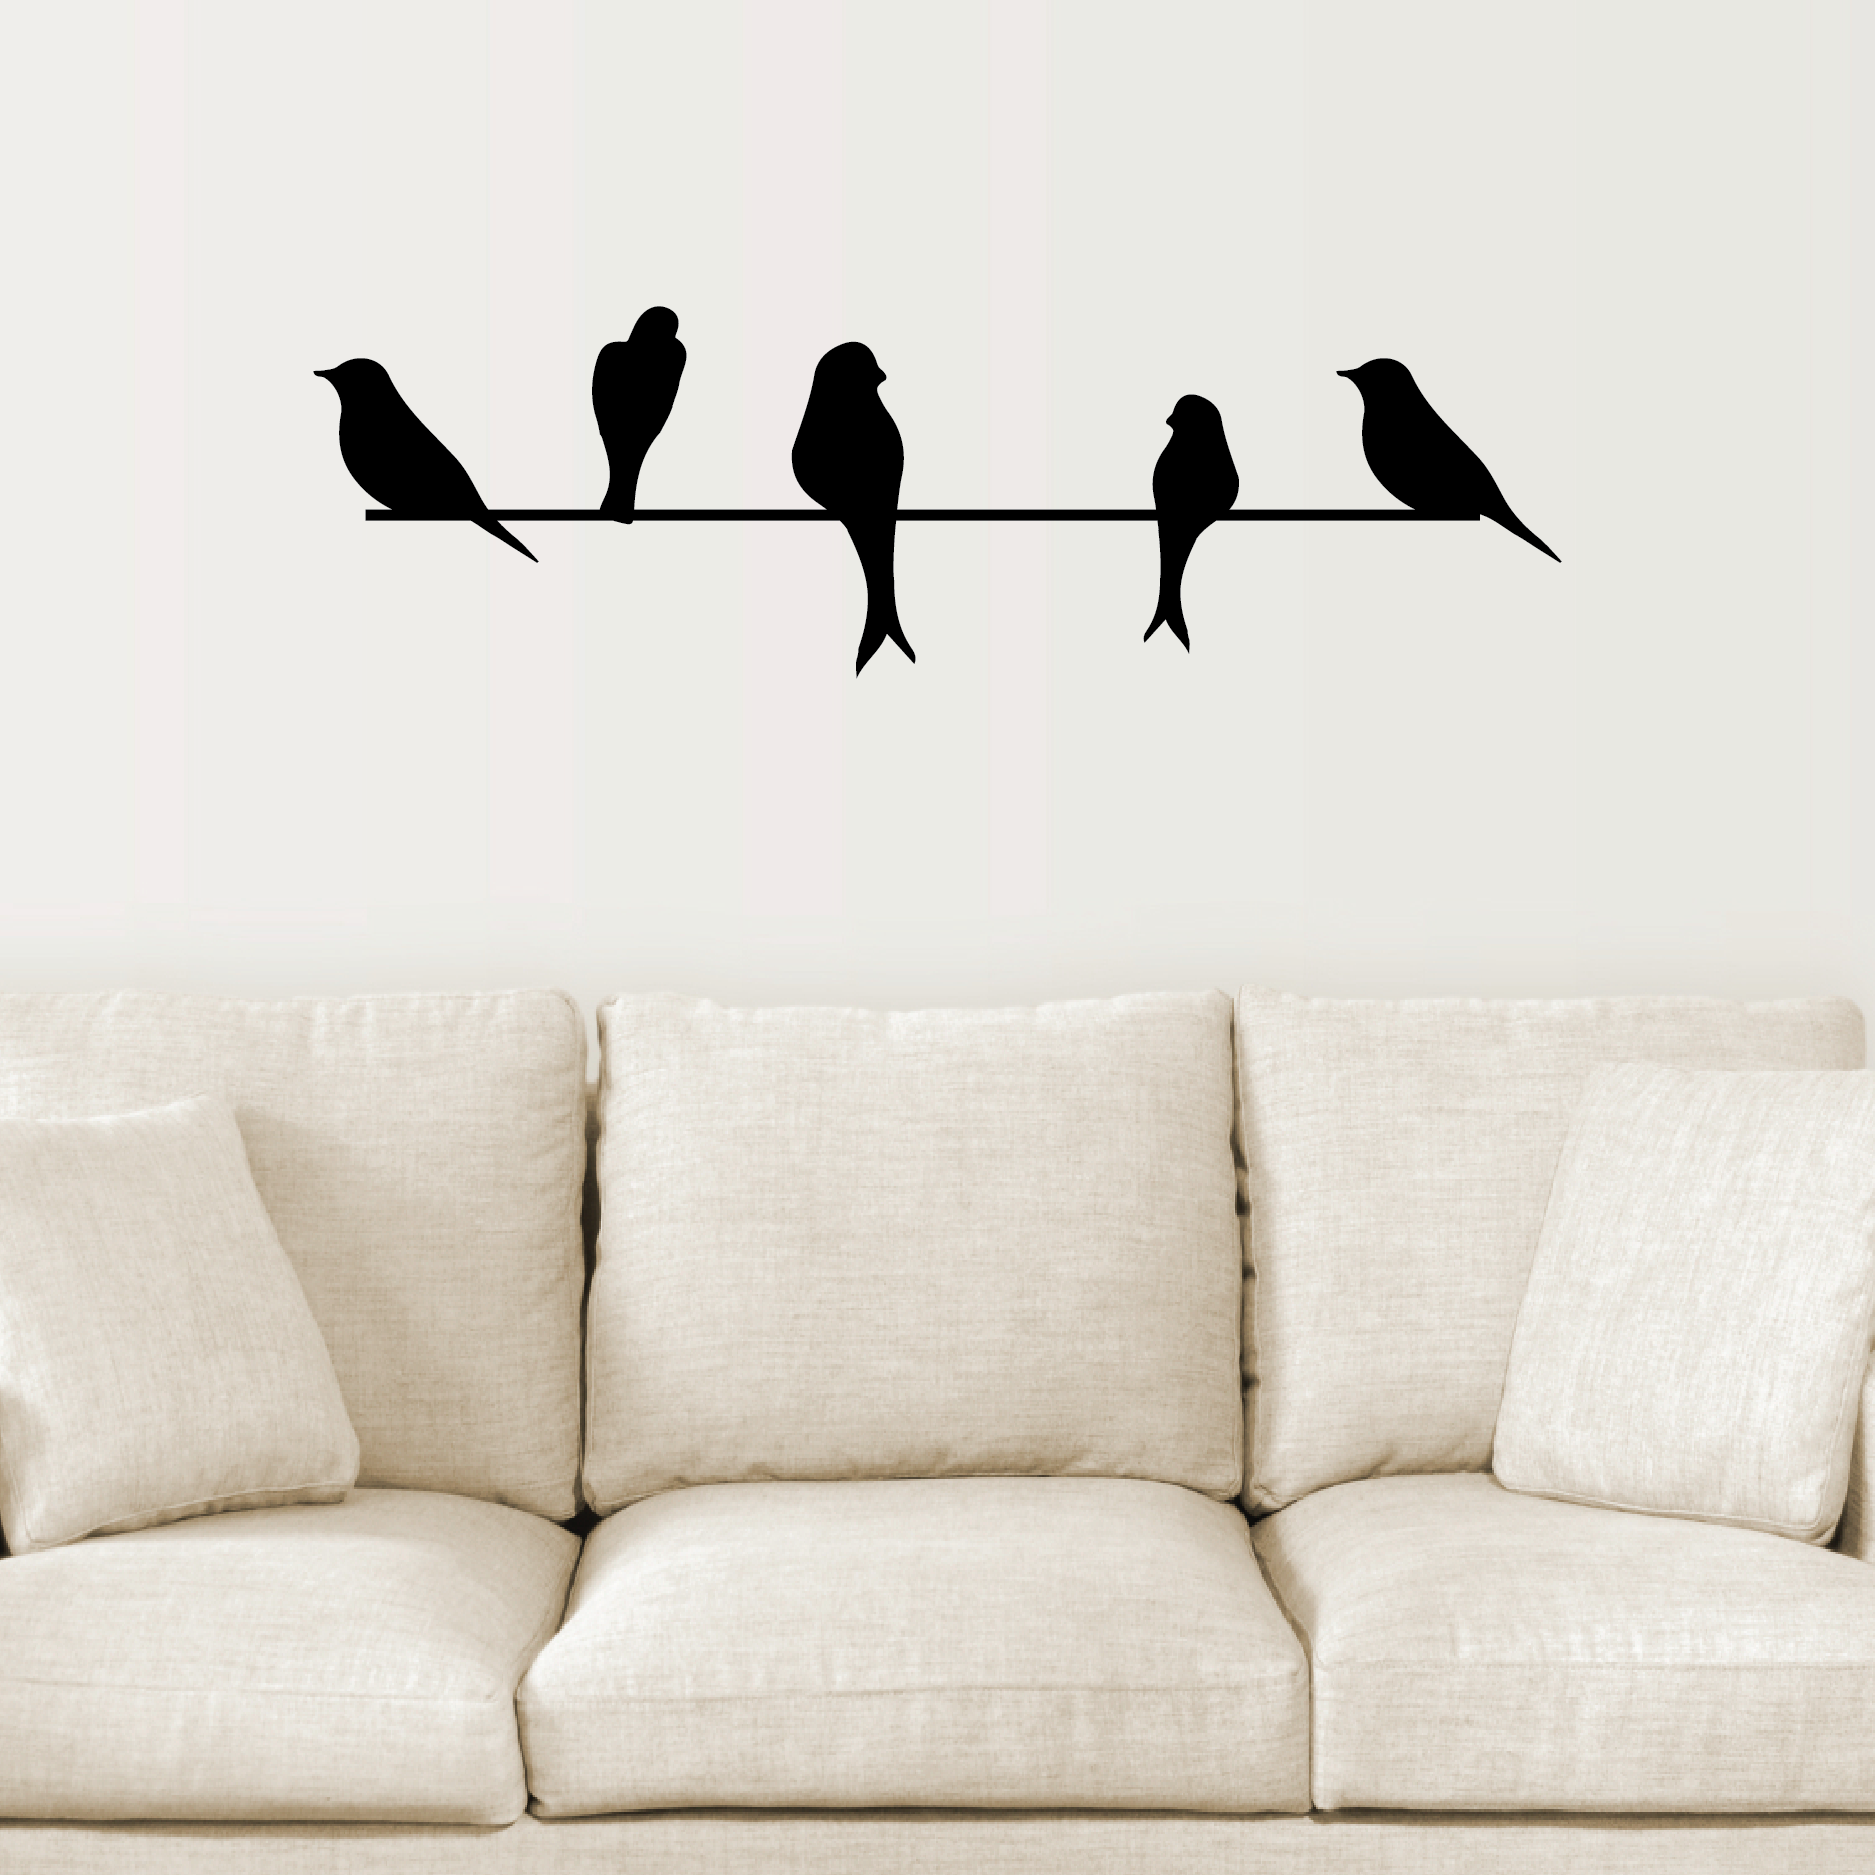 Wire Wall Art birds on a wire wall quotes™ wall art decal | wallquotes